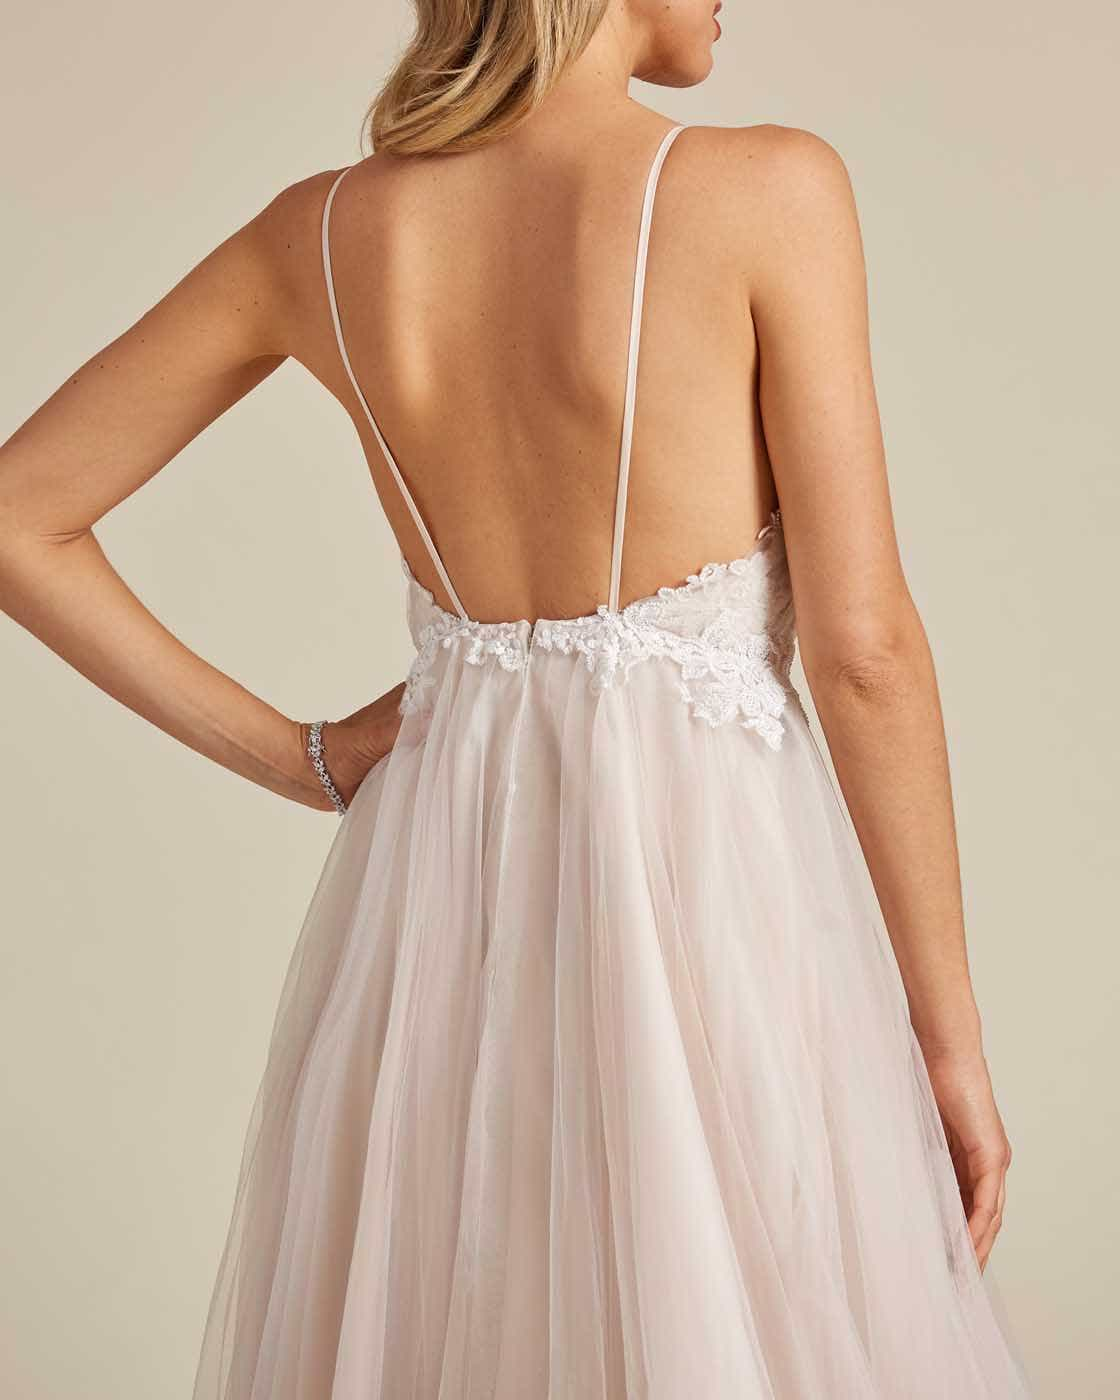 Champagne White Embroidery Long Length Wedding Gown - Detail